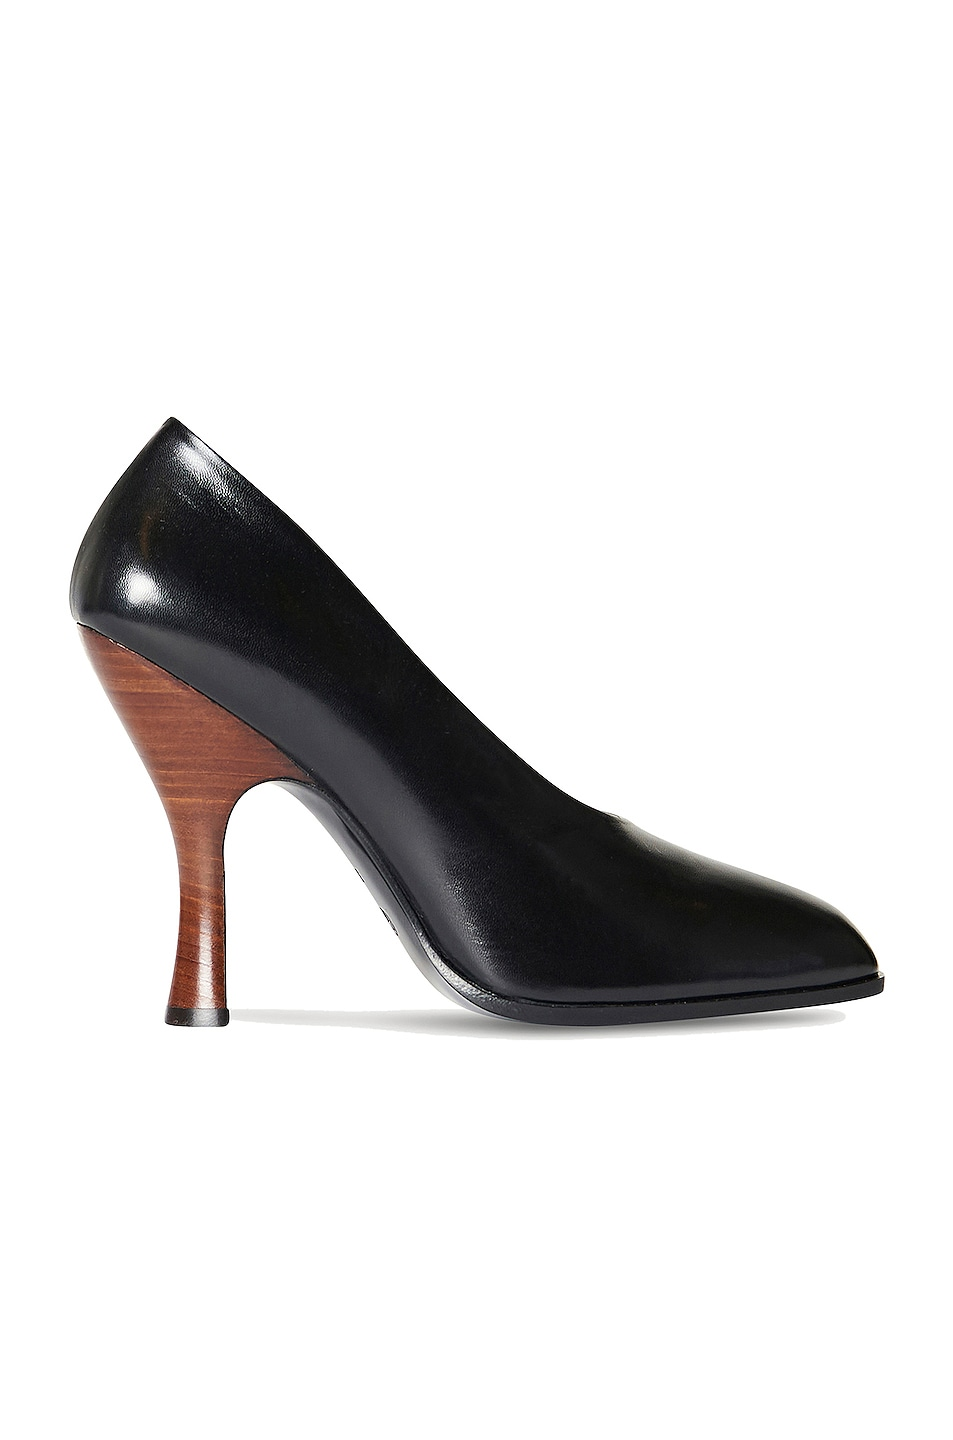 Image 1 of The Row Jade Leather Pumps in Black